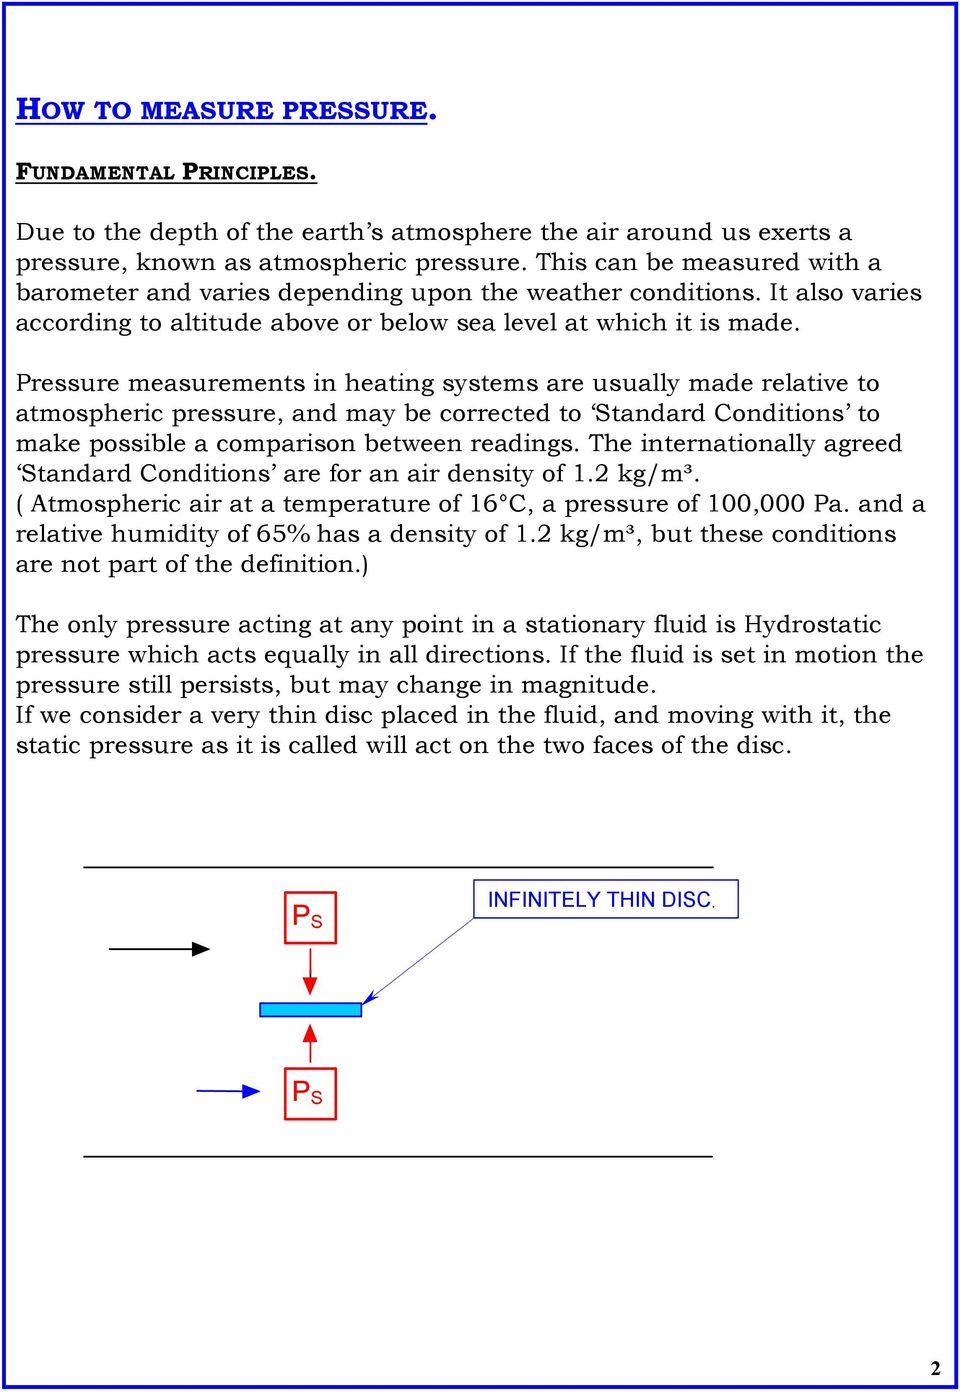 Pressure measurements in heating systems are usually made relative to atmospheric pressure, and may be corrected to Standard Conditions to make possible a comparison between readings.